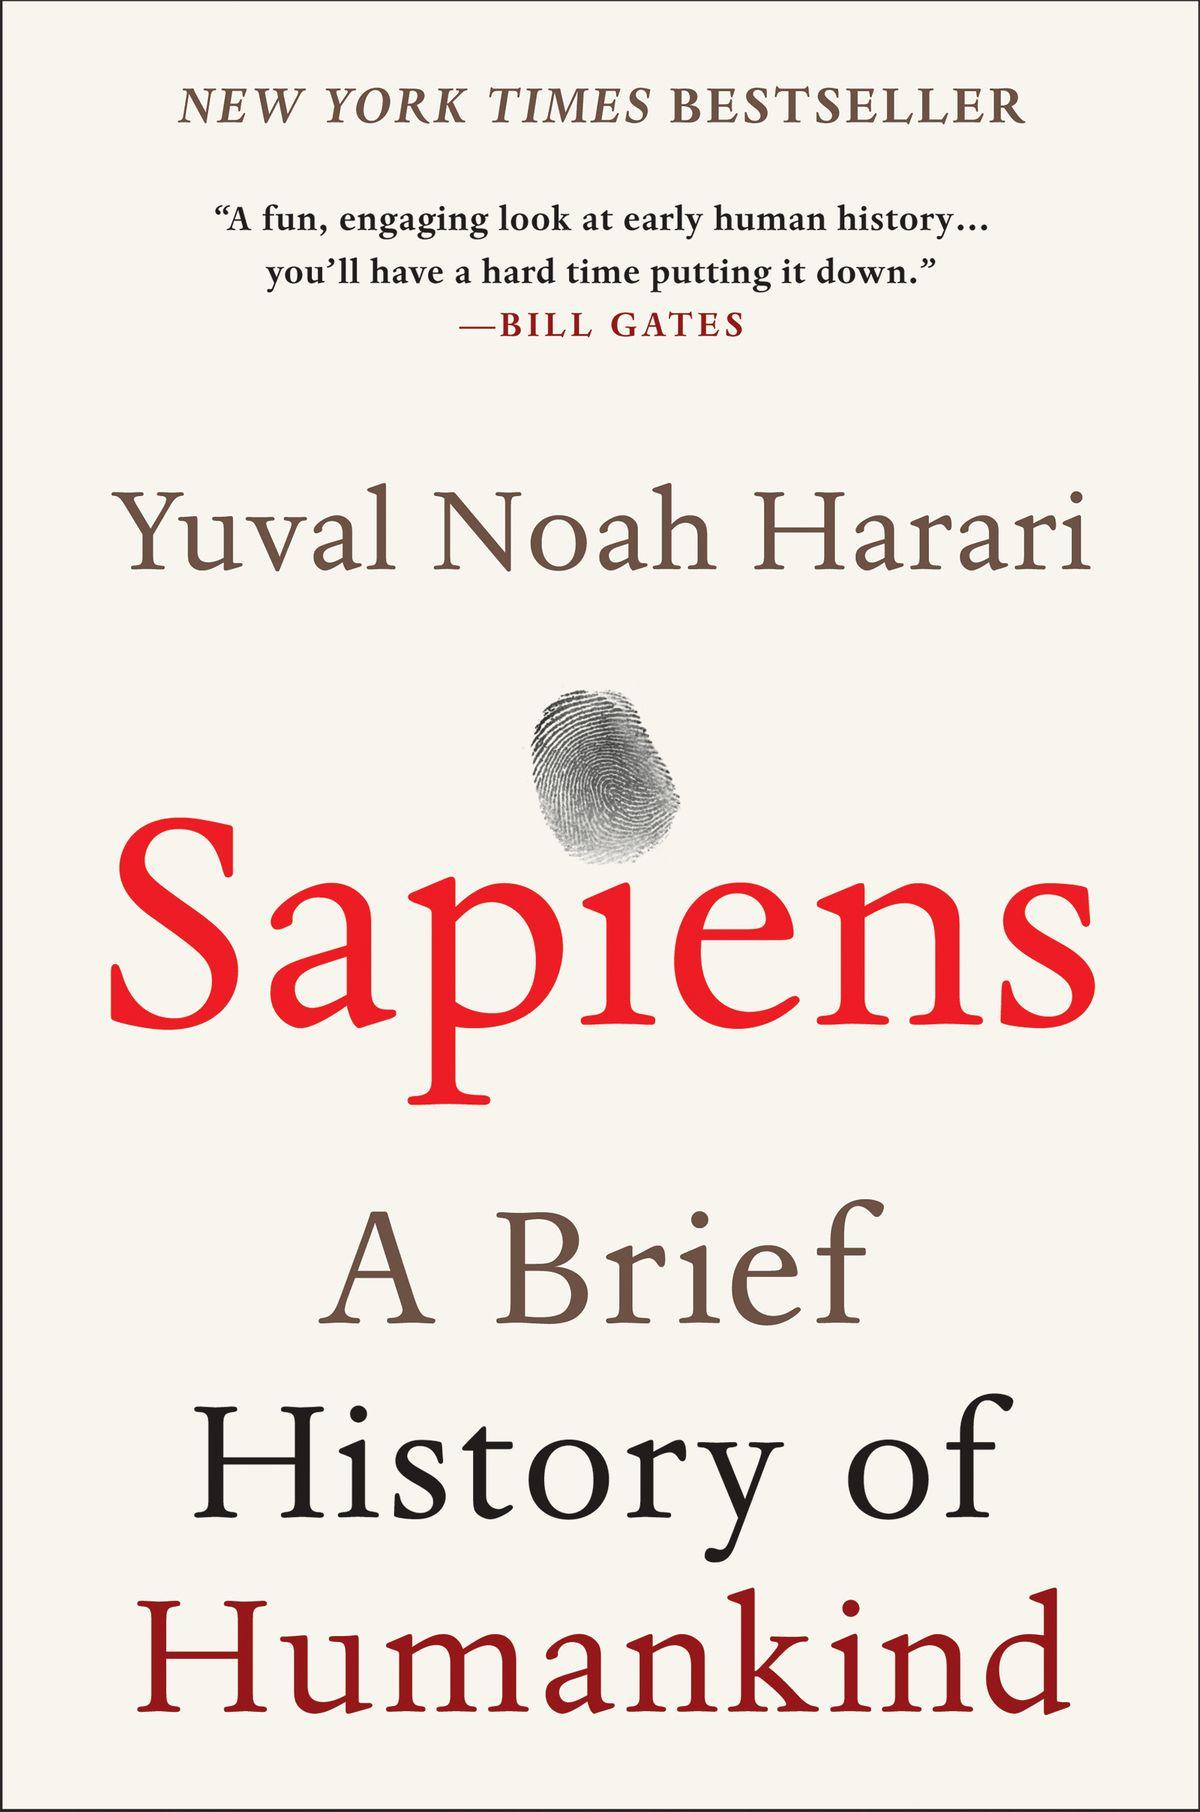 "Sapiens - by Yuval Noah Harari""Sapiens provides some much-needed insight into our behavioral patterns across a variety of social and landscape scales. It's easy to read and intuitively understood, but also peppered with interesting facts from recent discoveries and changing scientific consensuses.""- Nadja Quiroz, Landscape Designer""With approachability, precision, and a wry sense of humor, Yuval Harari places modern humans in the context of our complete collective history and in doing so, calls into question almost every human ""truth"" we've ever clung to. As Harari states it, ""We study history not to know the future but to widen our horizons, to understand that our present situation is neither natural nor inevitable, and that we consequently have many more possibilities before us than we imagine.""- Judith Edwards, Marketing Manager"